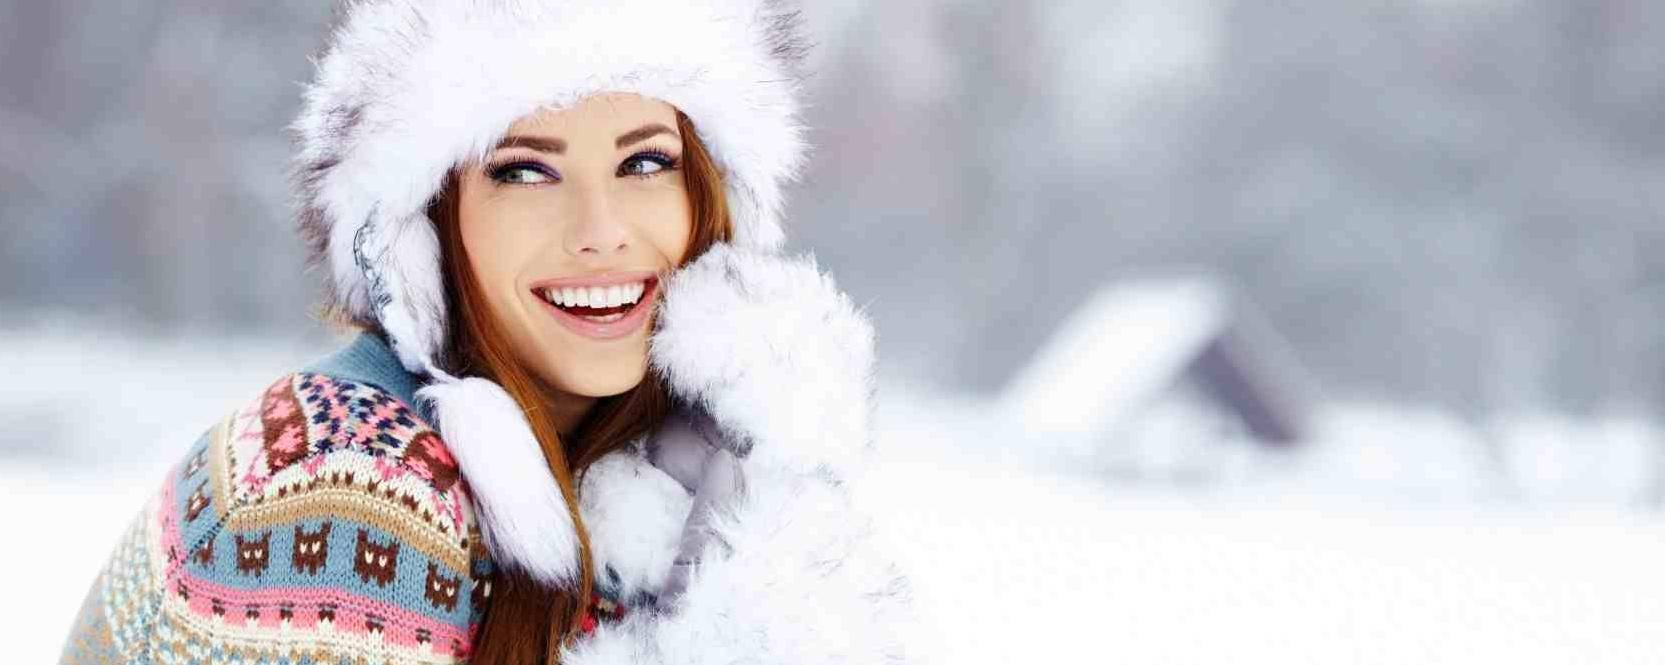 Banner Image for Is Your Skin Winter Ready? 3 Ways Massage Benefits Dry Skin